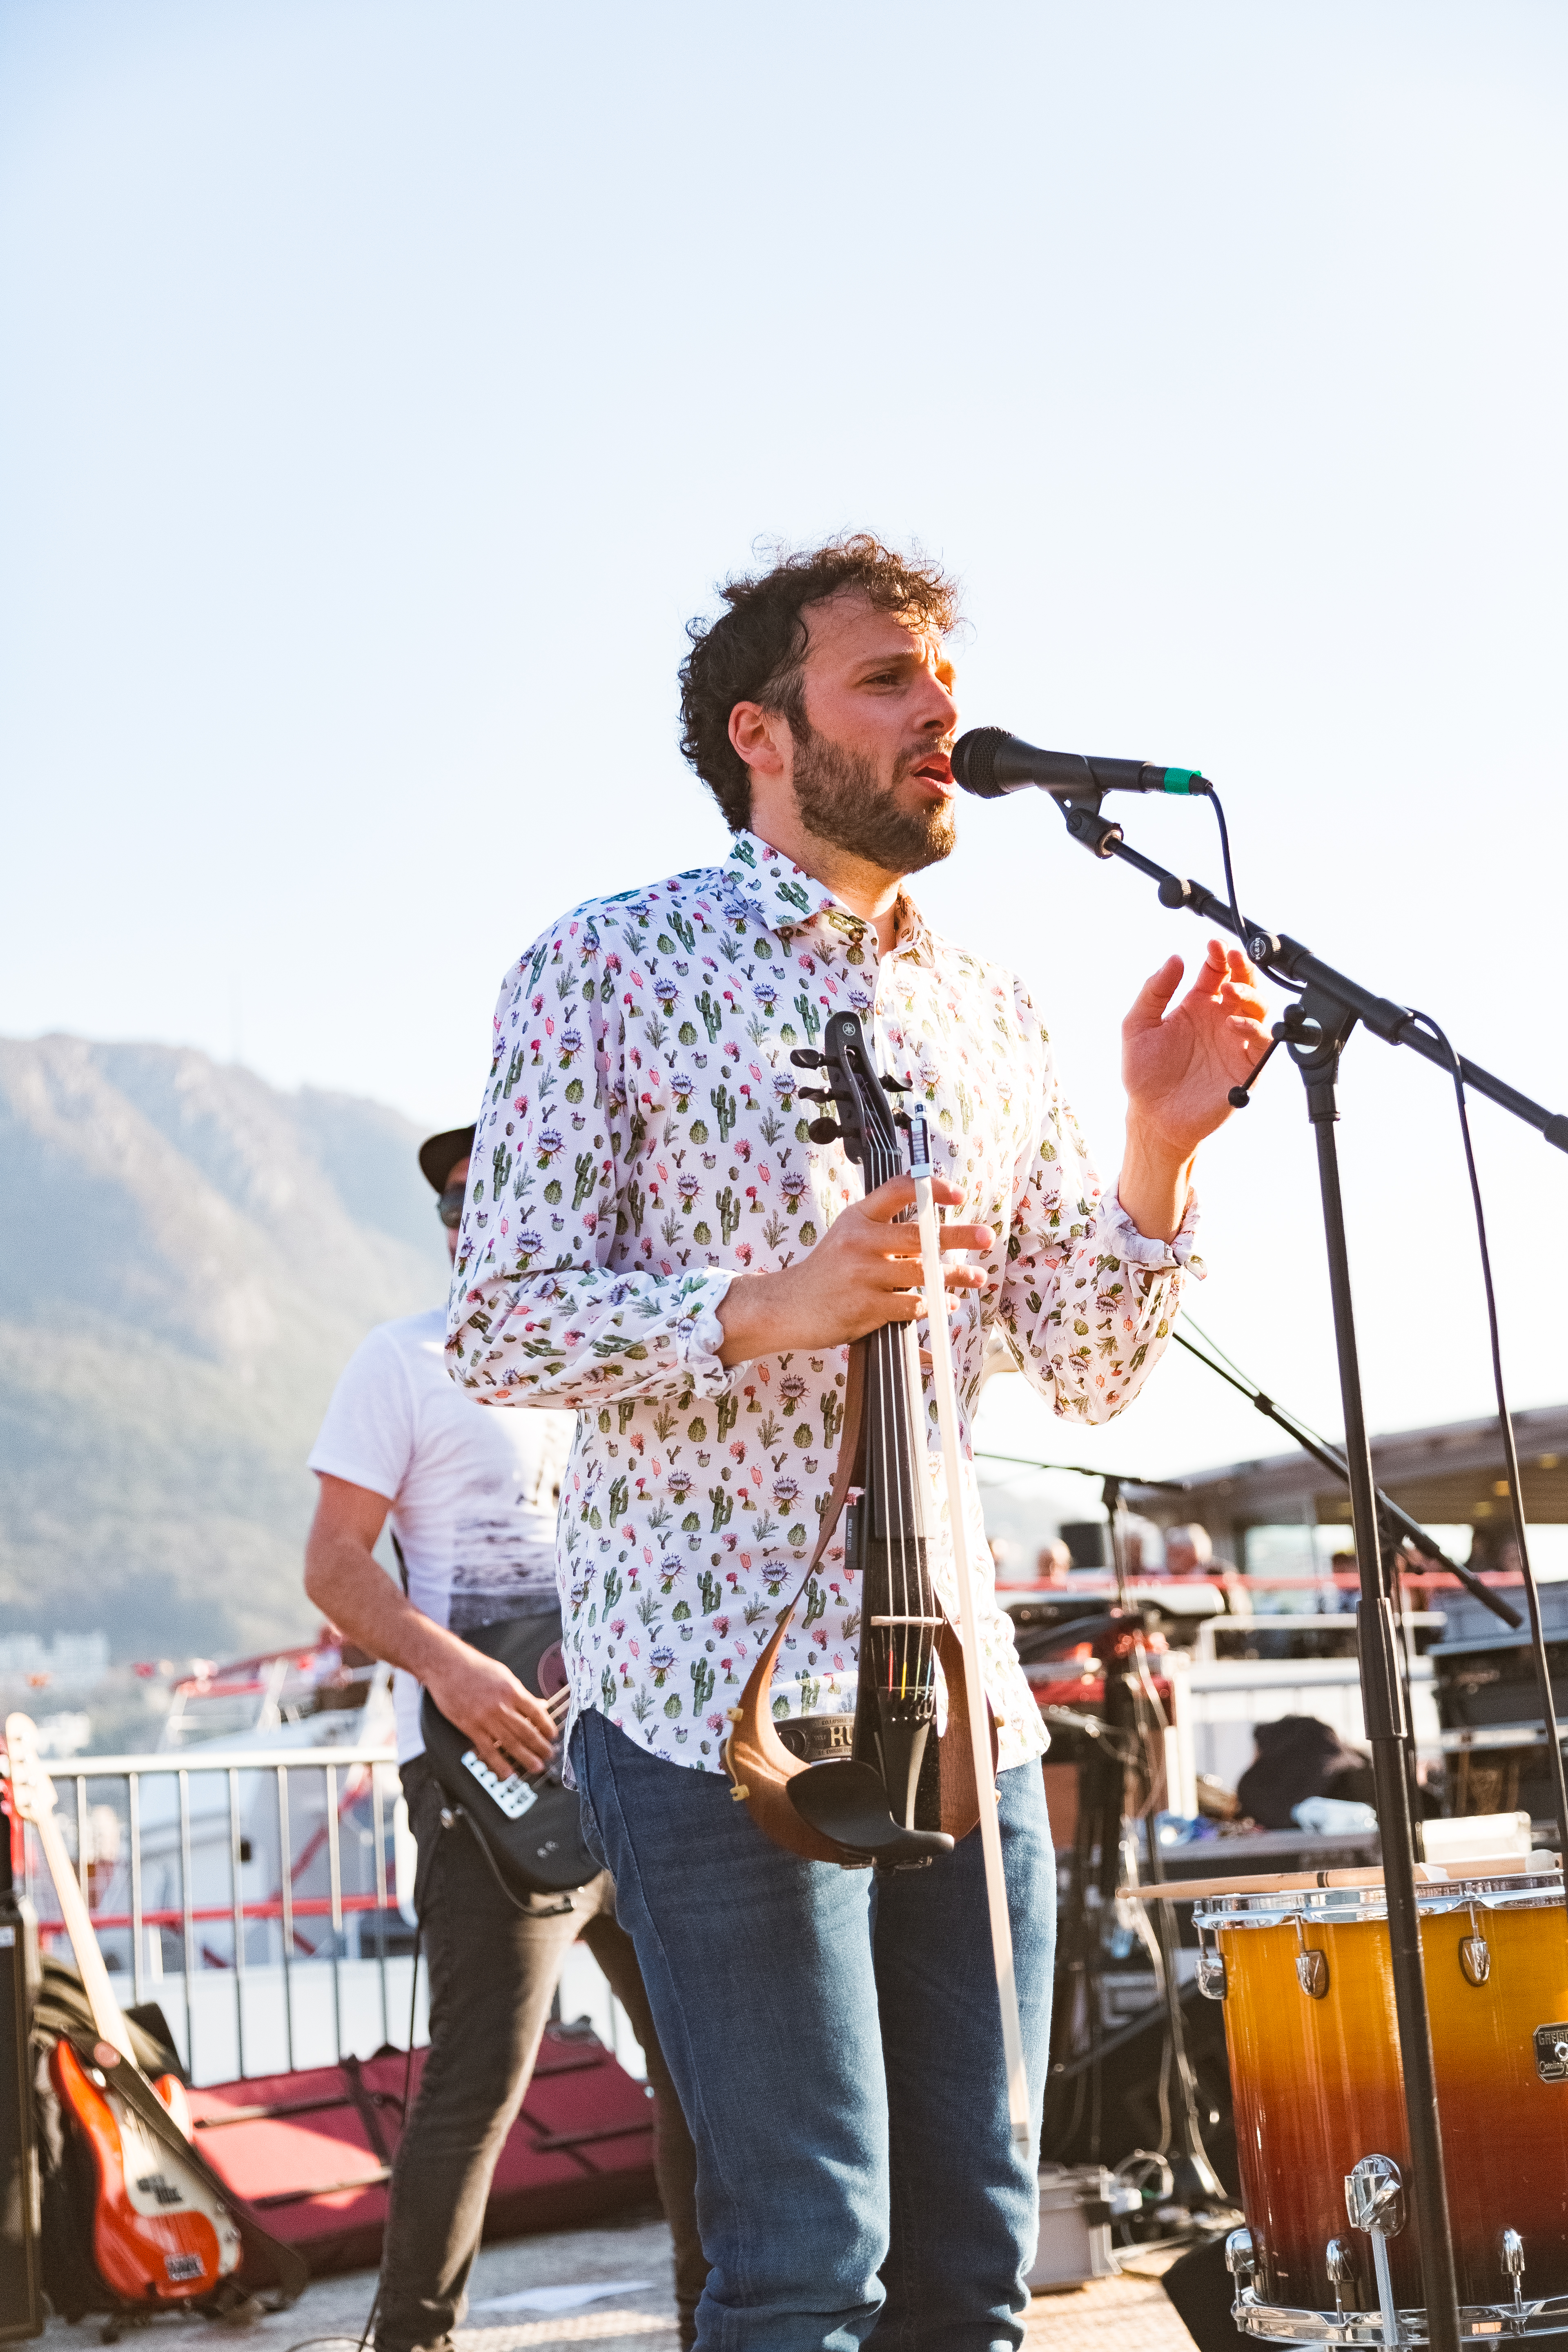 Photo of a Man Singing on Stage